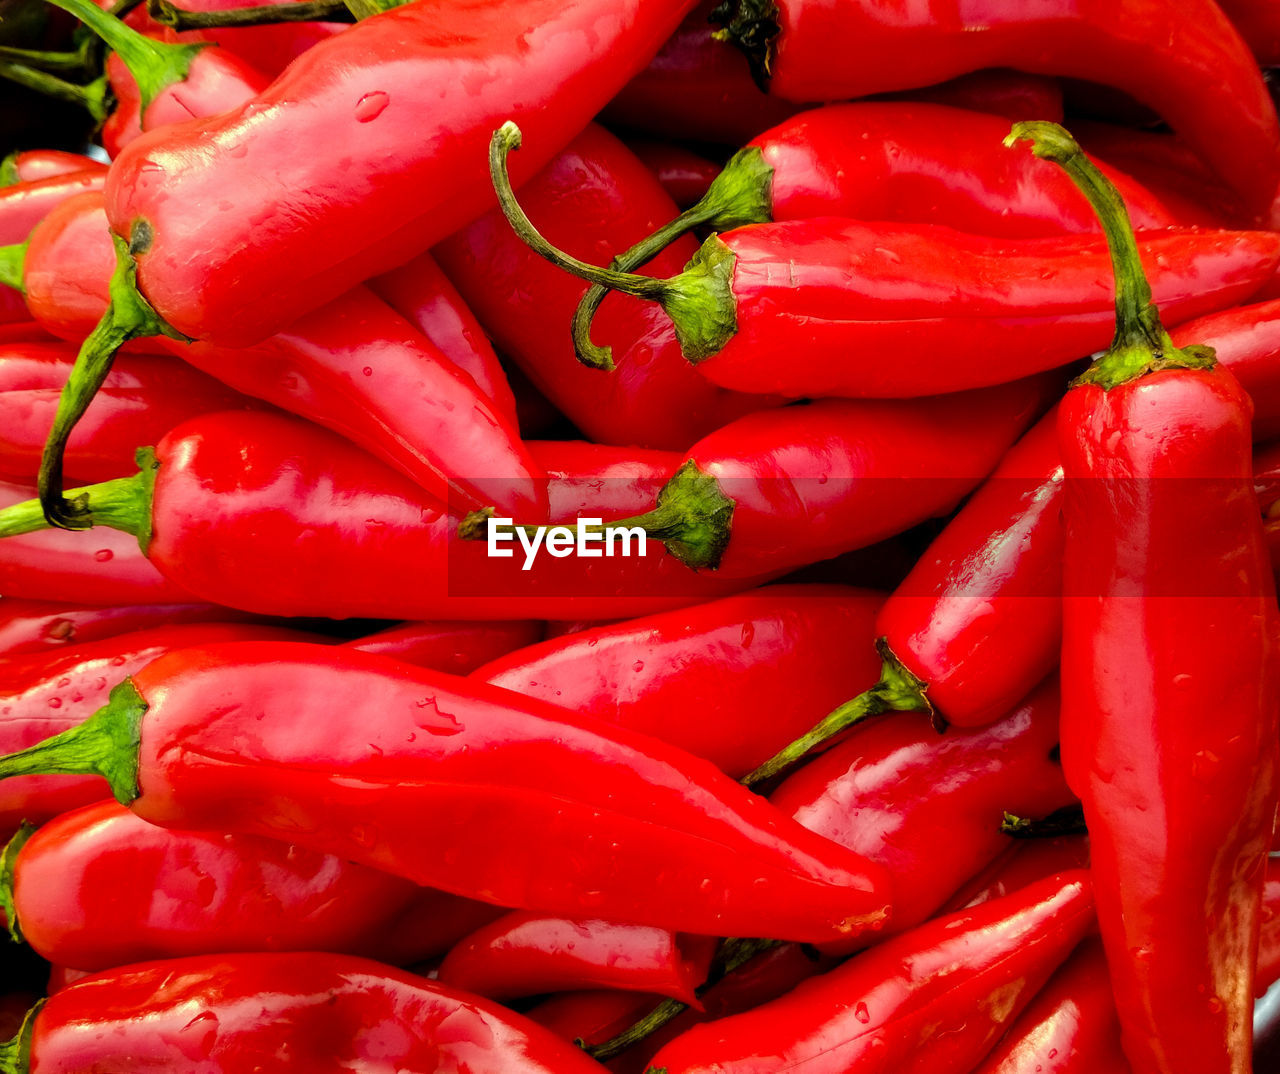 red, vegetable, food and drink, food, freshness, backgrounds, pepper, wellbeing, chili pepper, full frame, spice, healthy eating, large group of objects, red chili pepper, still life, close-up, market, no people, abundance, heap, sale, ripe, consumerism, vegetarian food